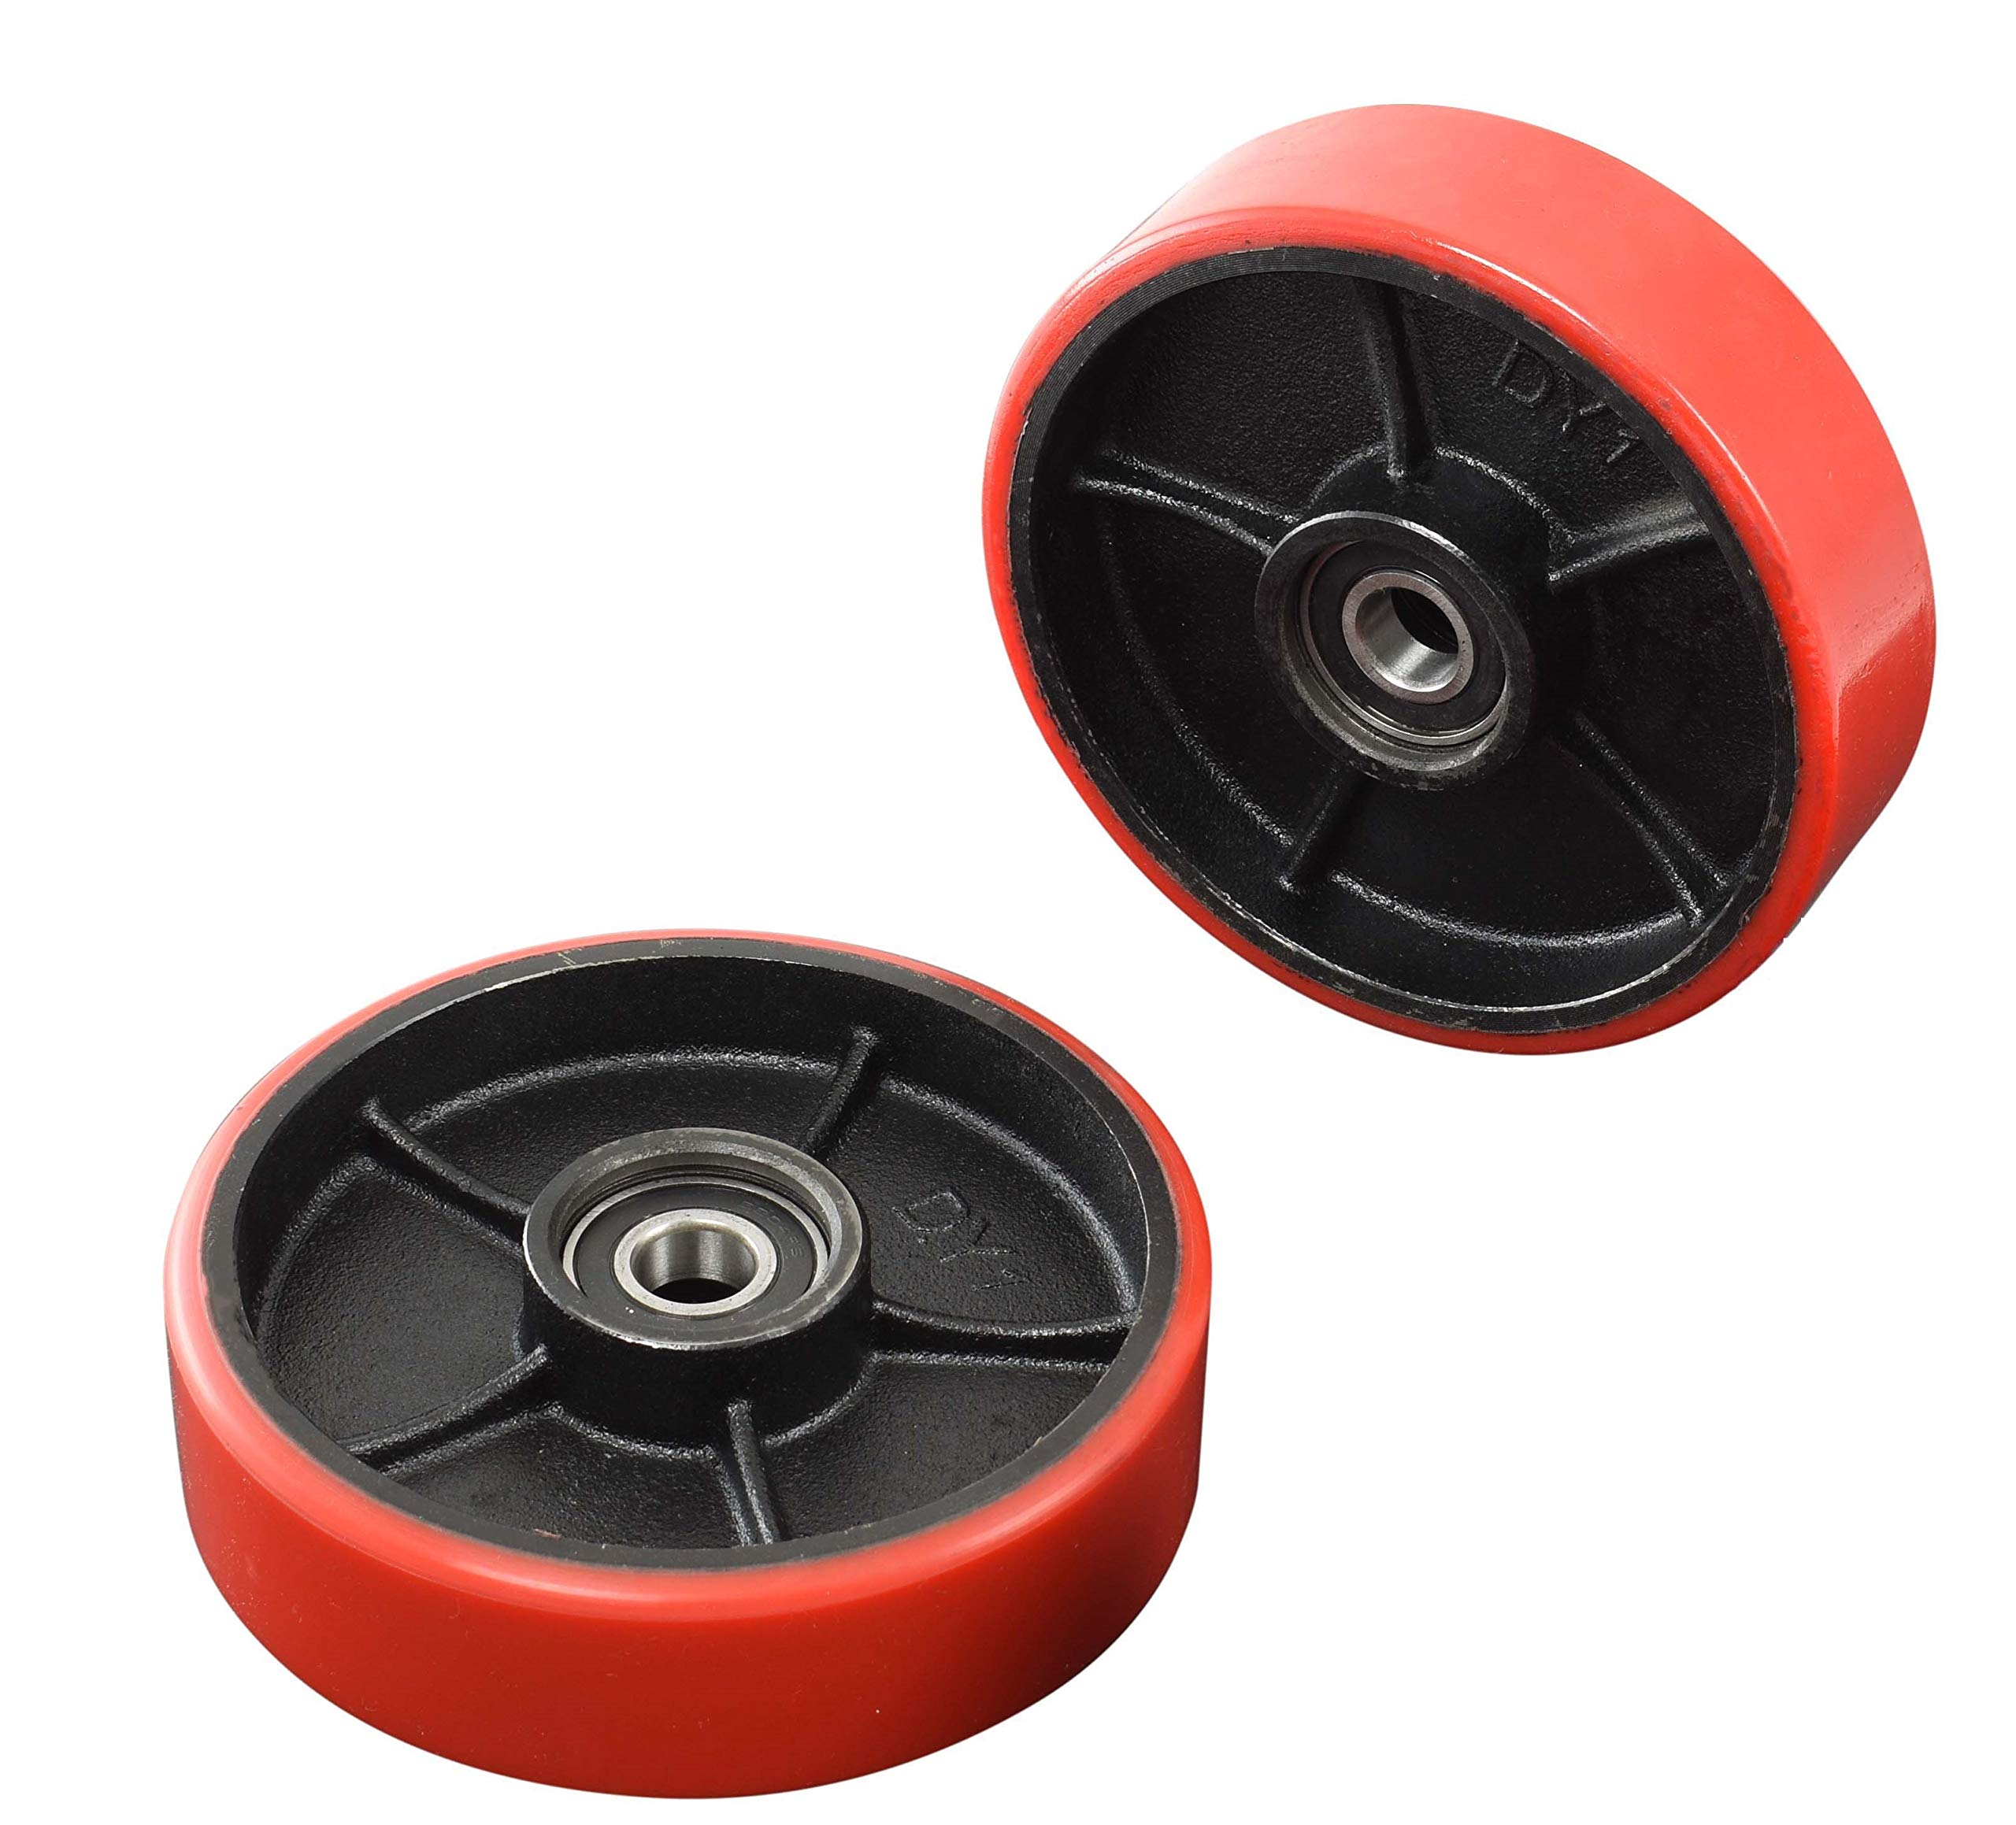 Pallet Jack/Truck Full Set (8 pcs) Steering Wheels 7''x 2'' Pair with Front Load Roller 3'' x 3.75'' Pair with Bearings ID 20mm Poly Tread Red with Entry Exit Roller and Protective Caps by CARBO GLIDE (Image #3)